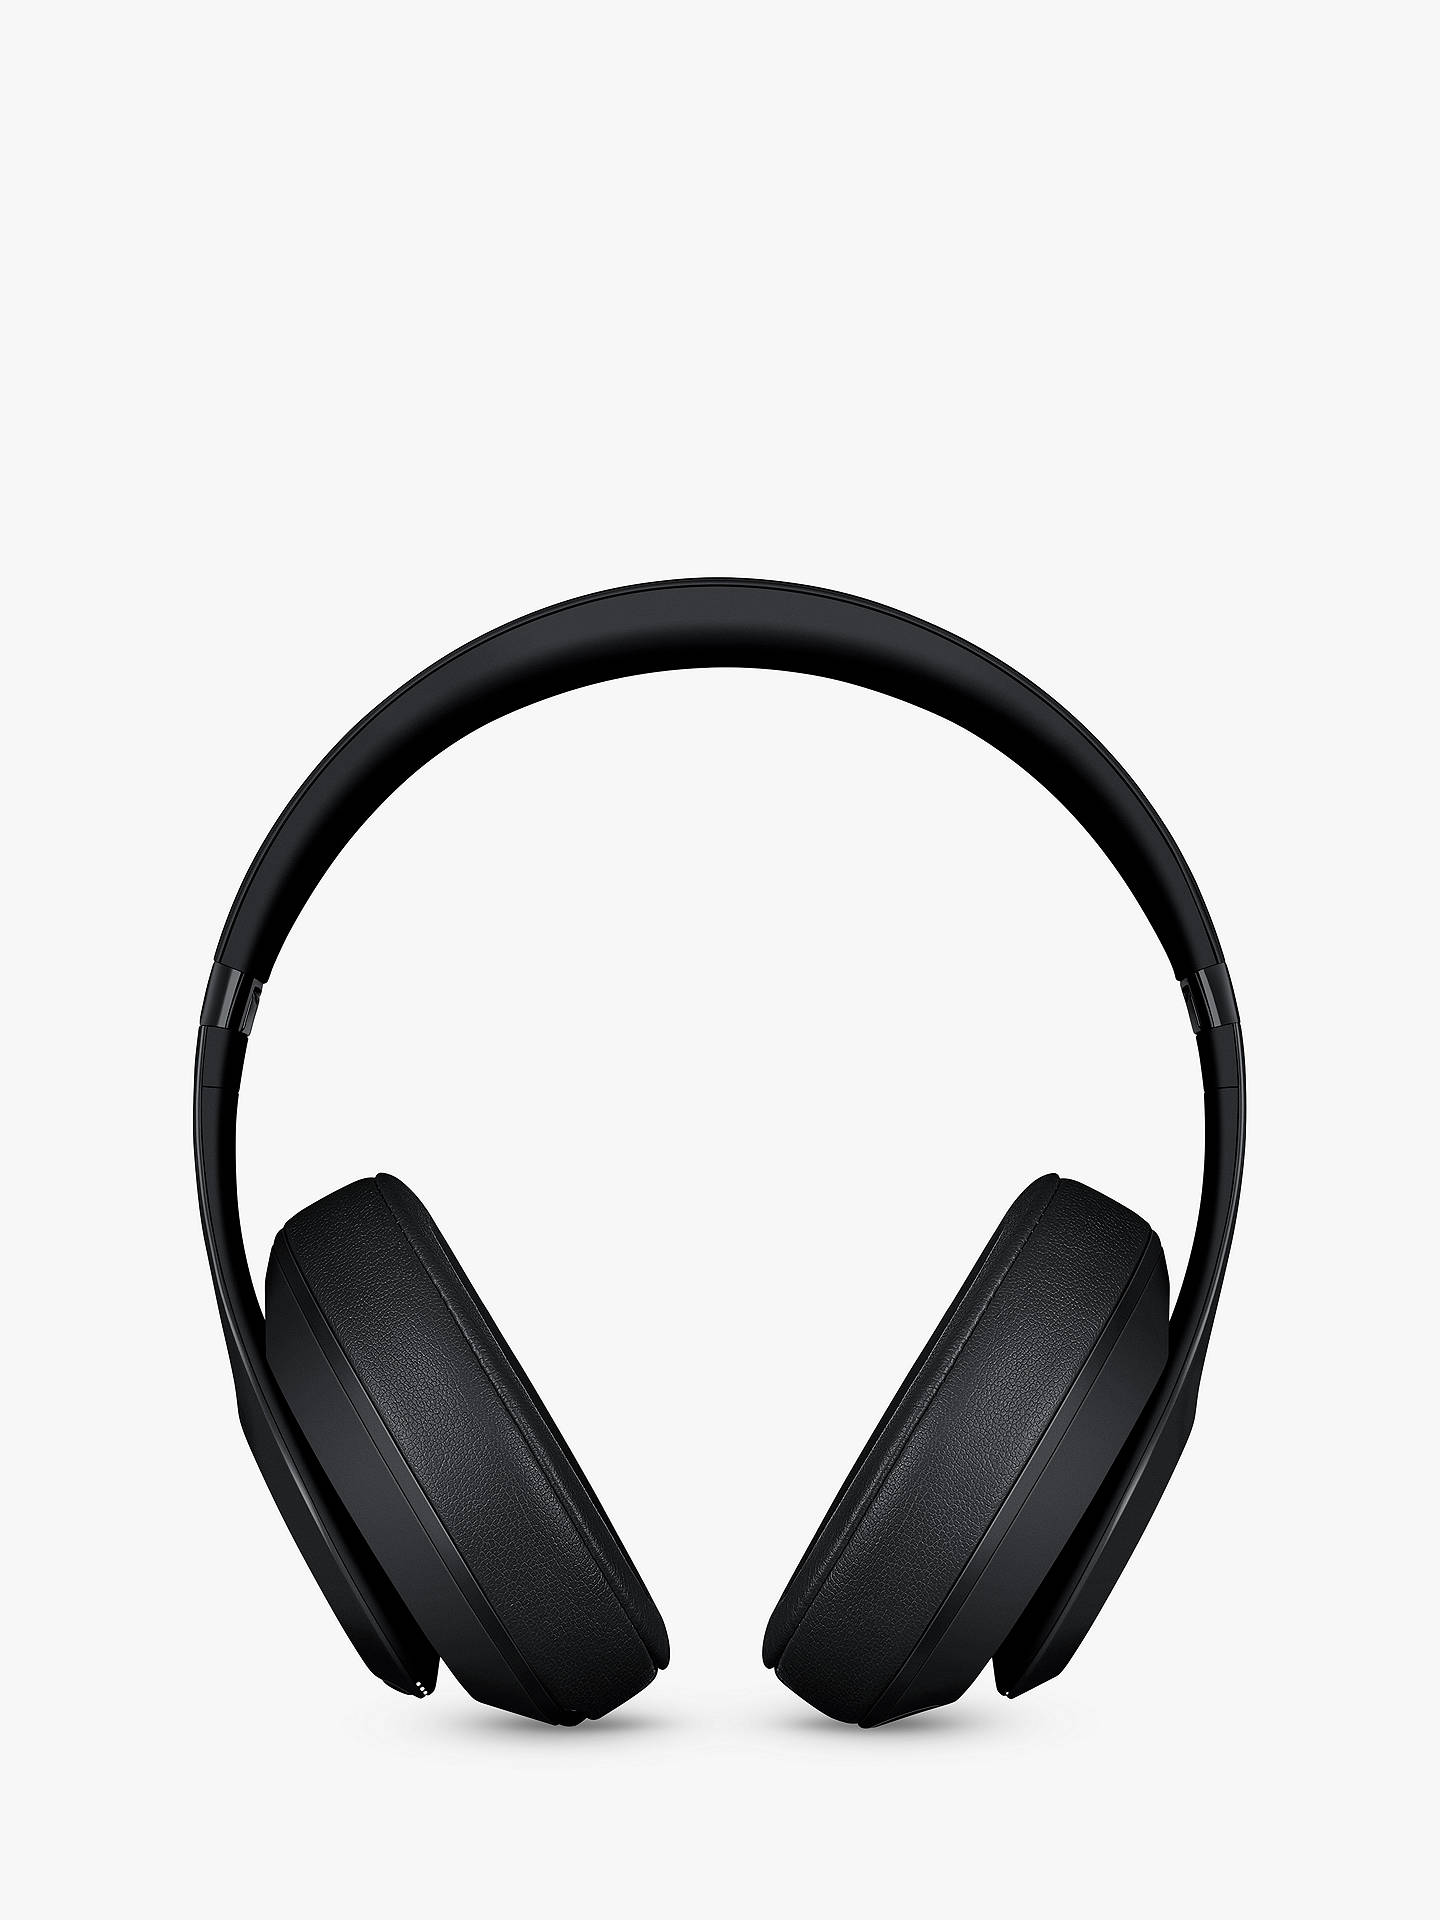 BuyBeats Studio³  Wireless Bluetooth Over-Ear Headphones with Pure Adaptive Noise Cancelling & Mic/Remote, Matte Black Online at johnlewis.com